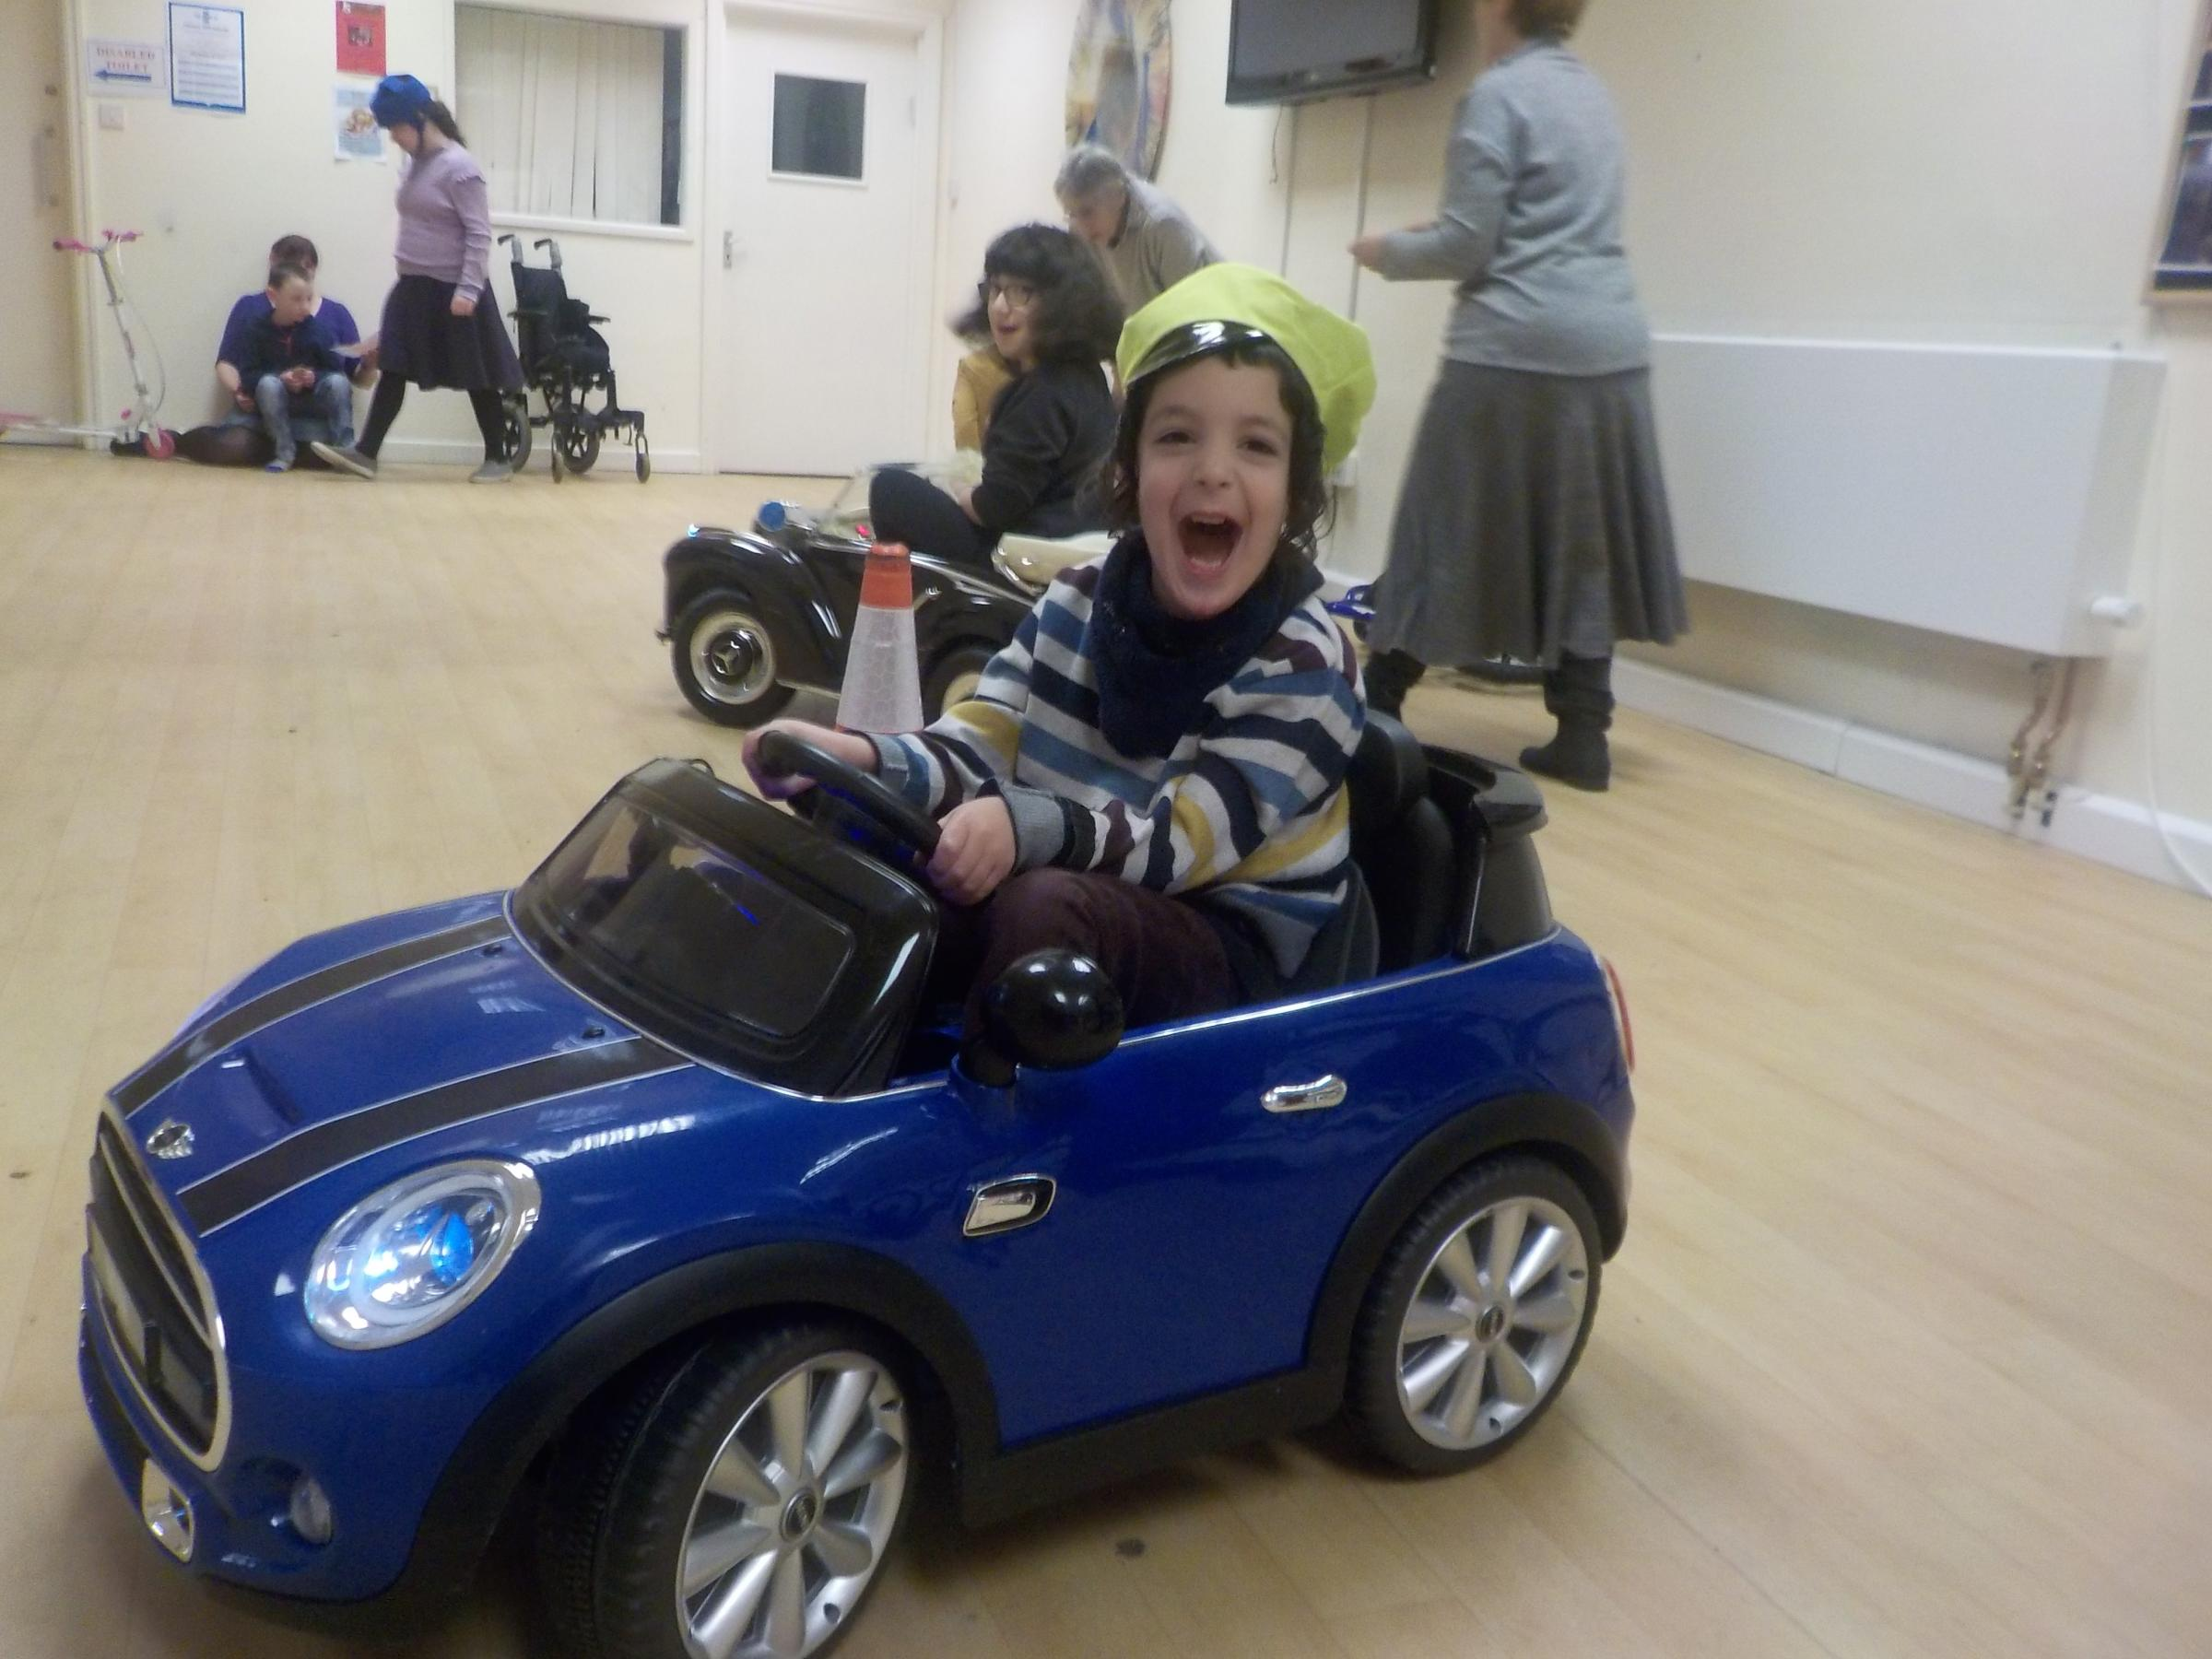 Youngster speeds around in an electric car at The Fed